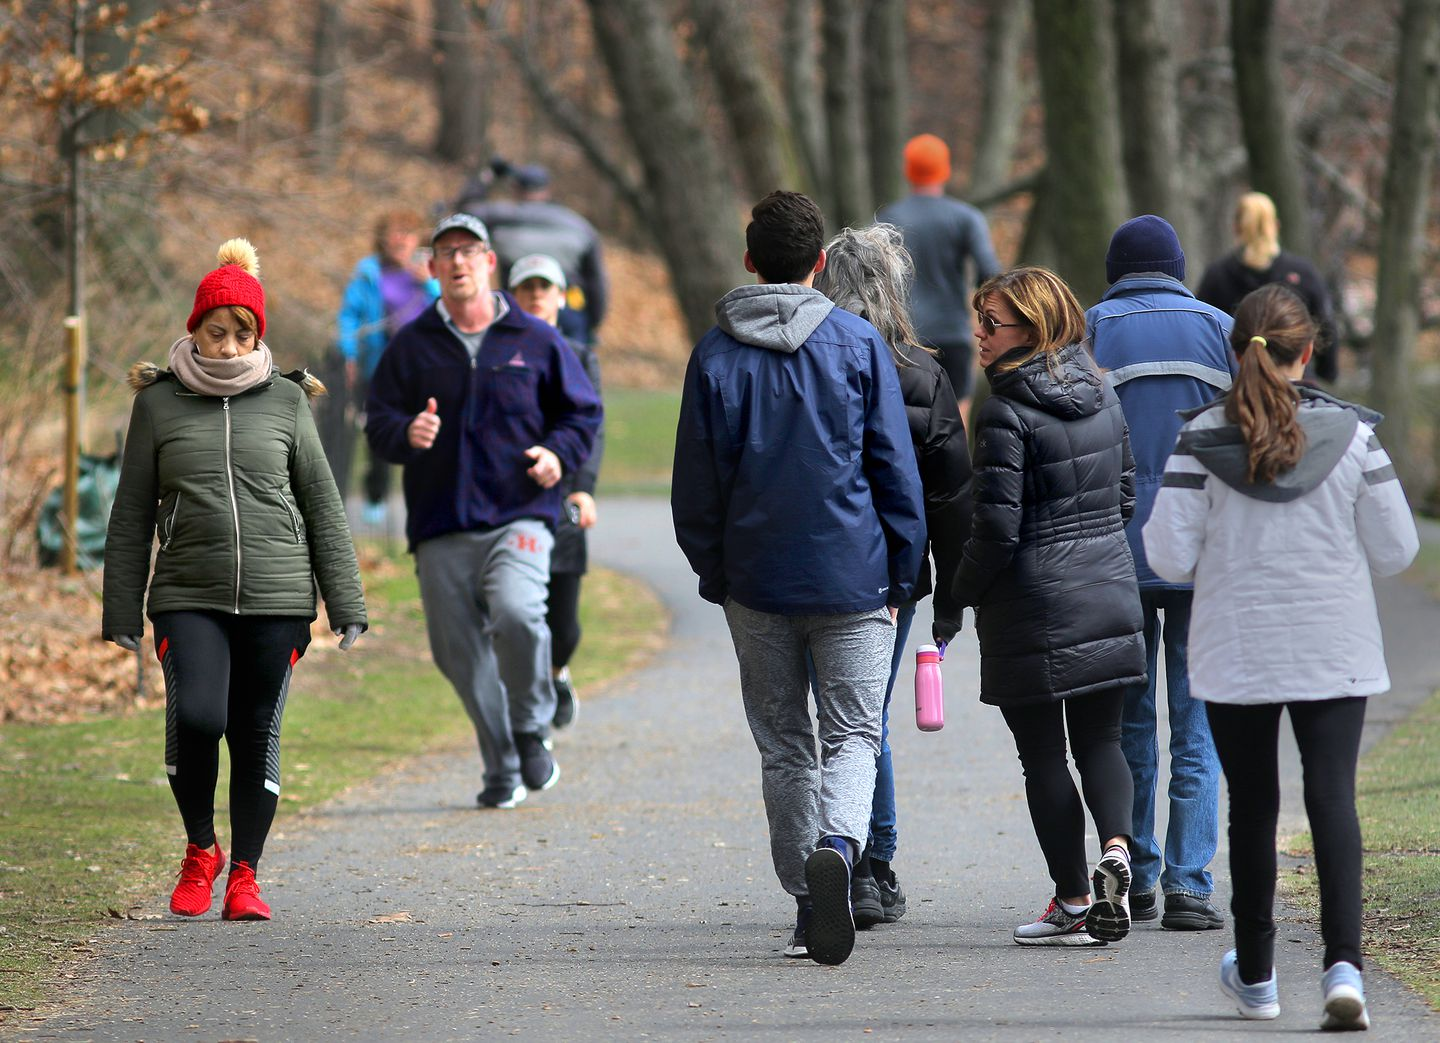 People enjoyed Jamaica Pond on a pleasant day on Tuesday.